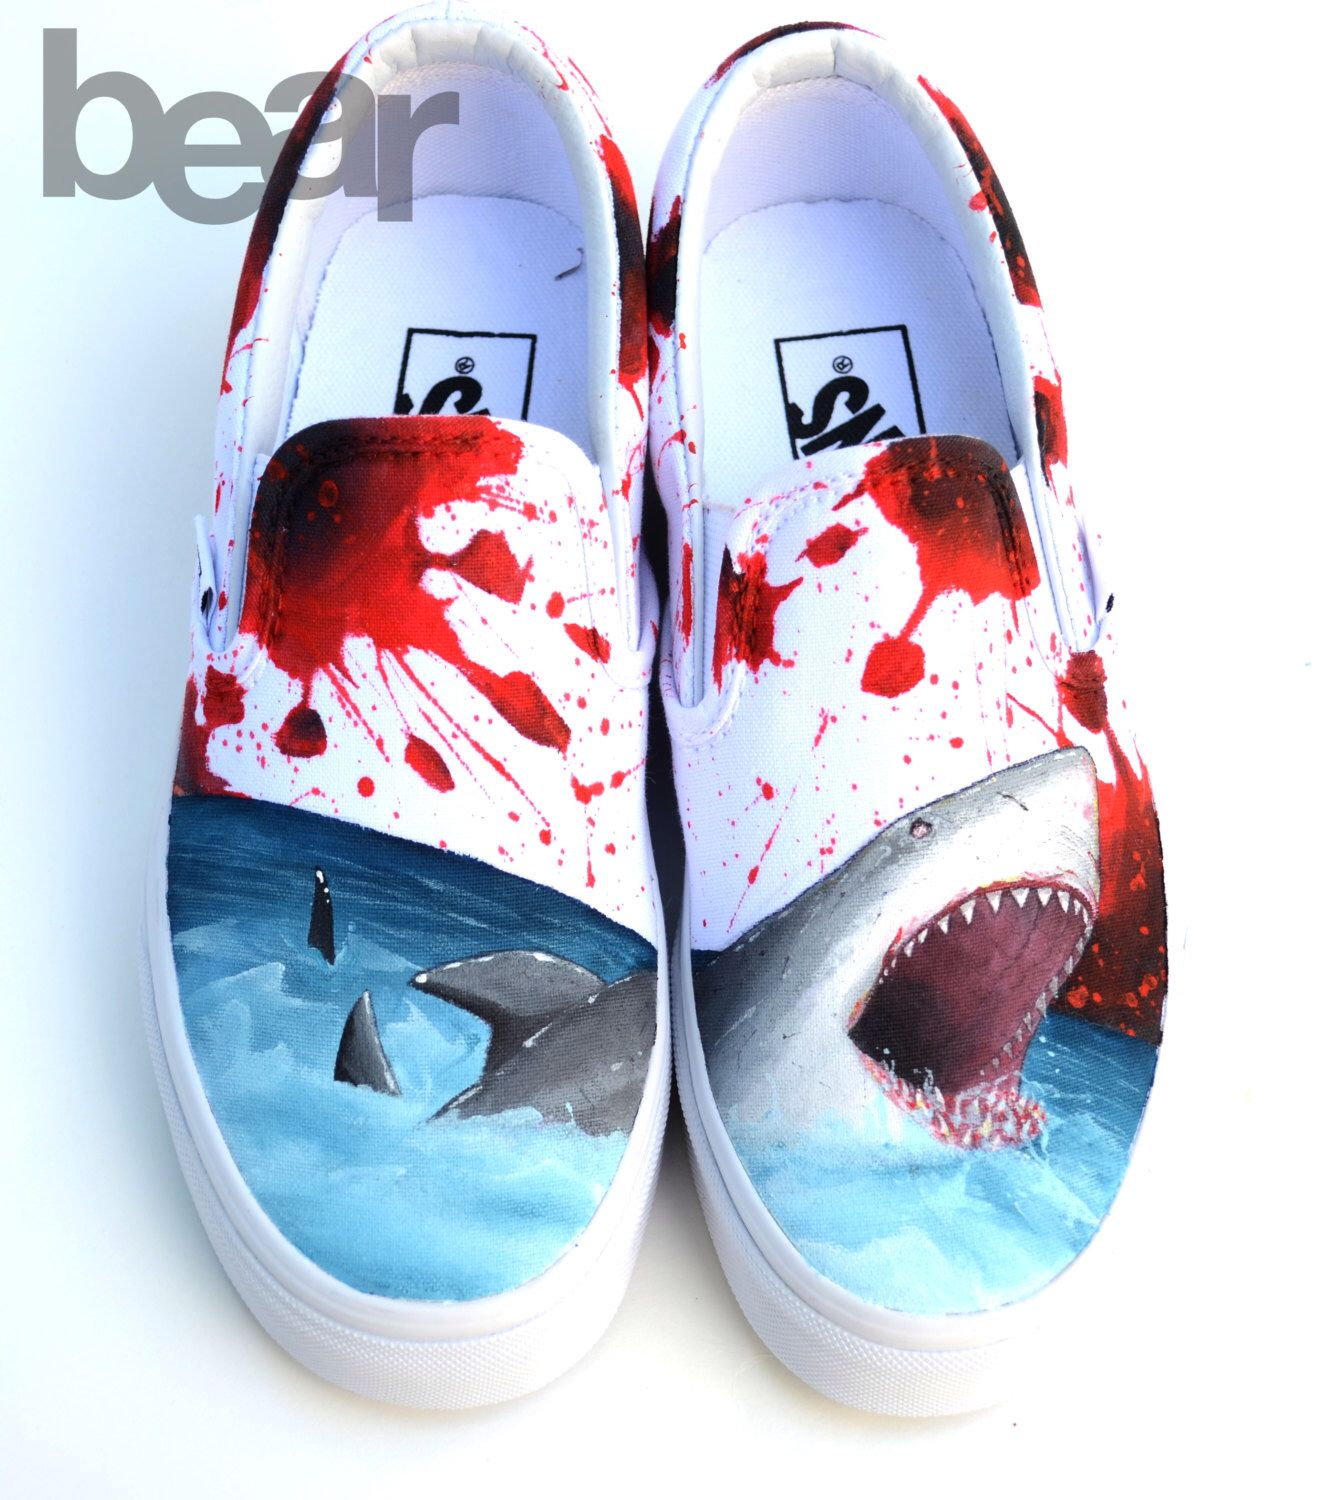 sports shoes 68e57 58f28 Custom Vans Hand Painted Shoes - Great White Shark Blood Spatter by  BearGallery on Etsy https